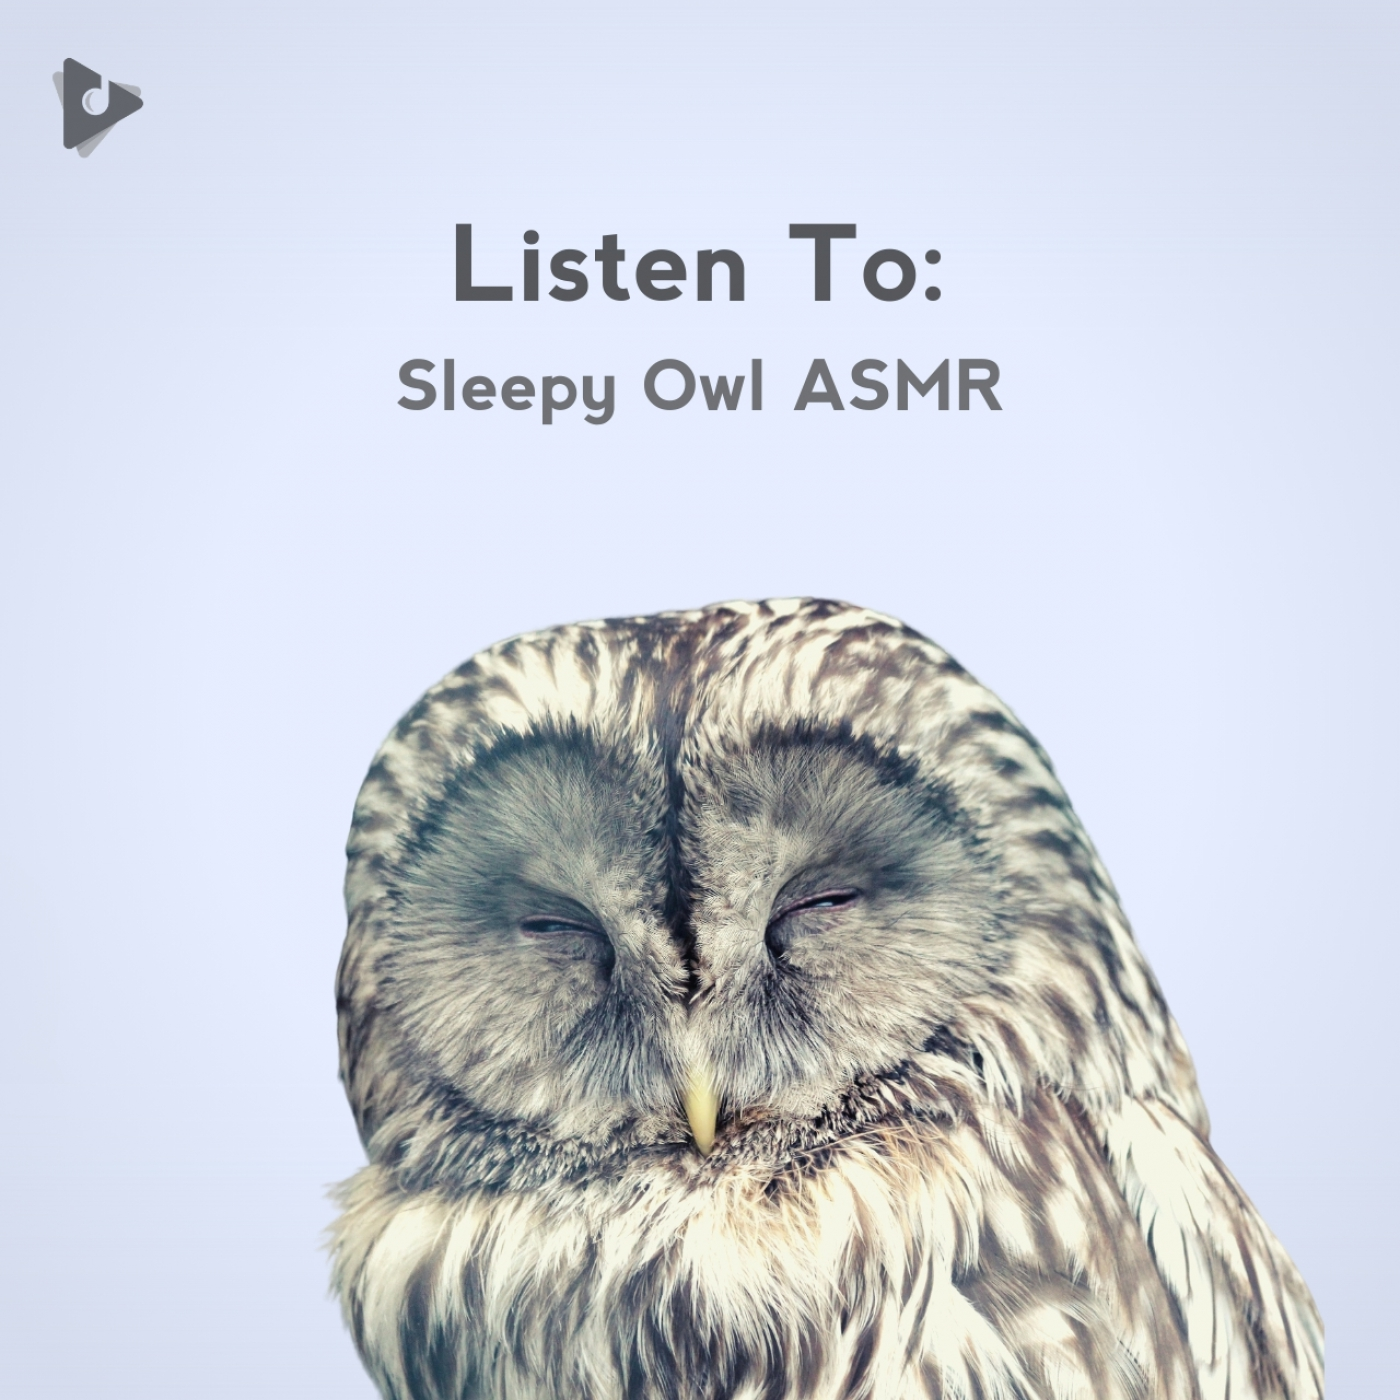 Listen To: Sleepy Owl ASMR